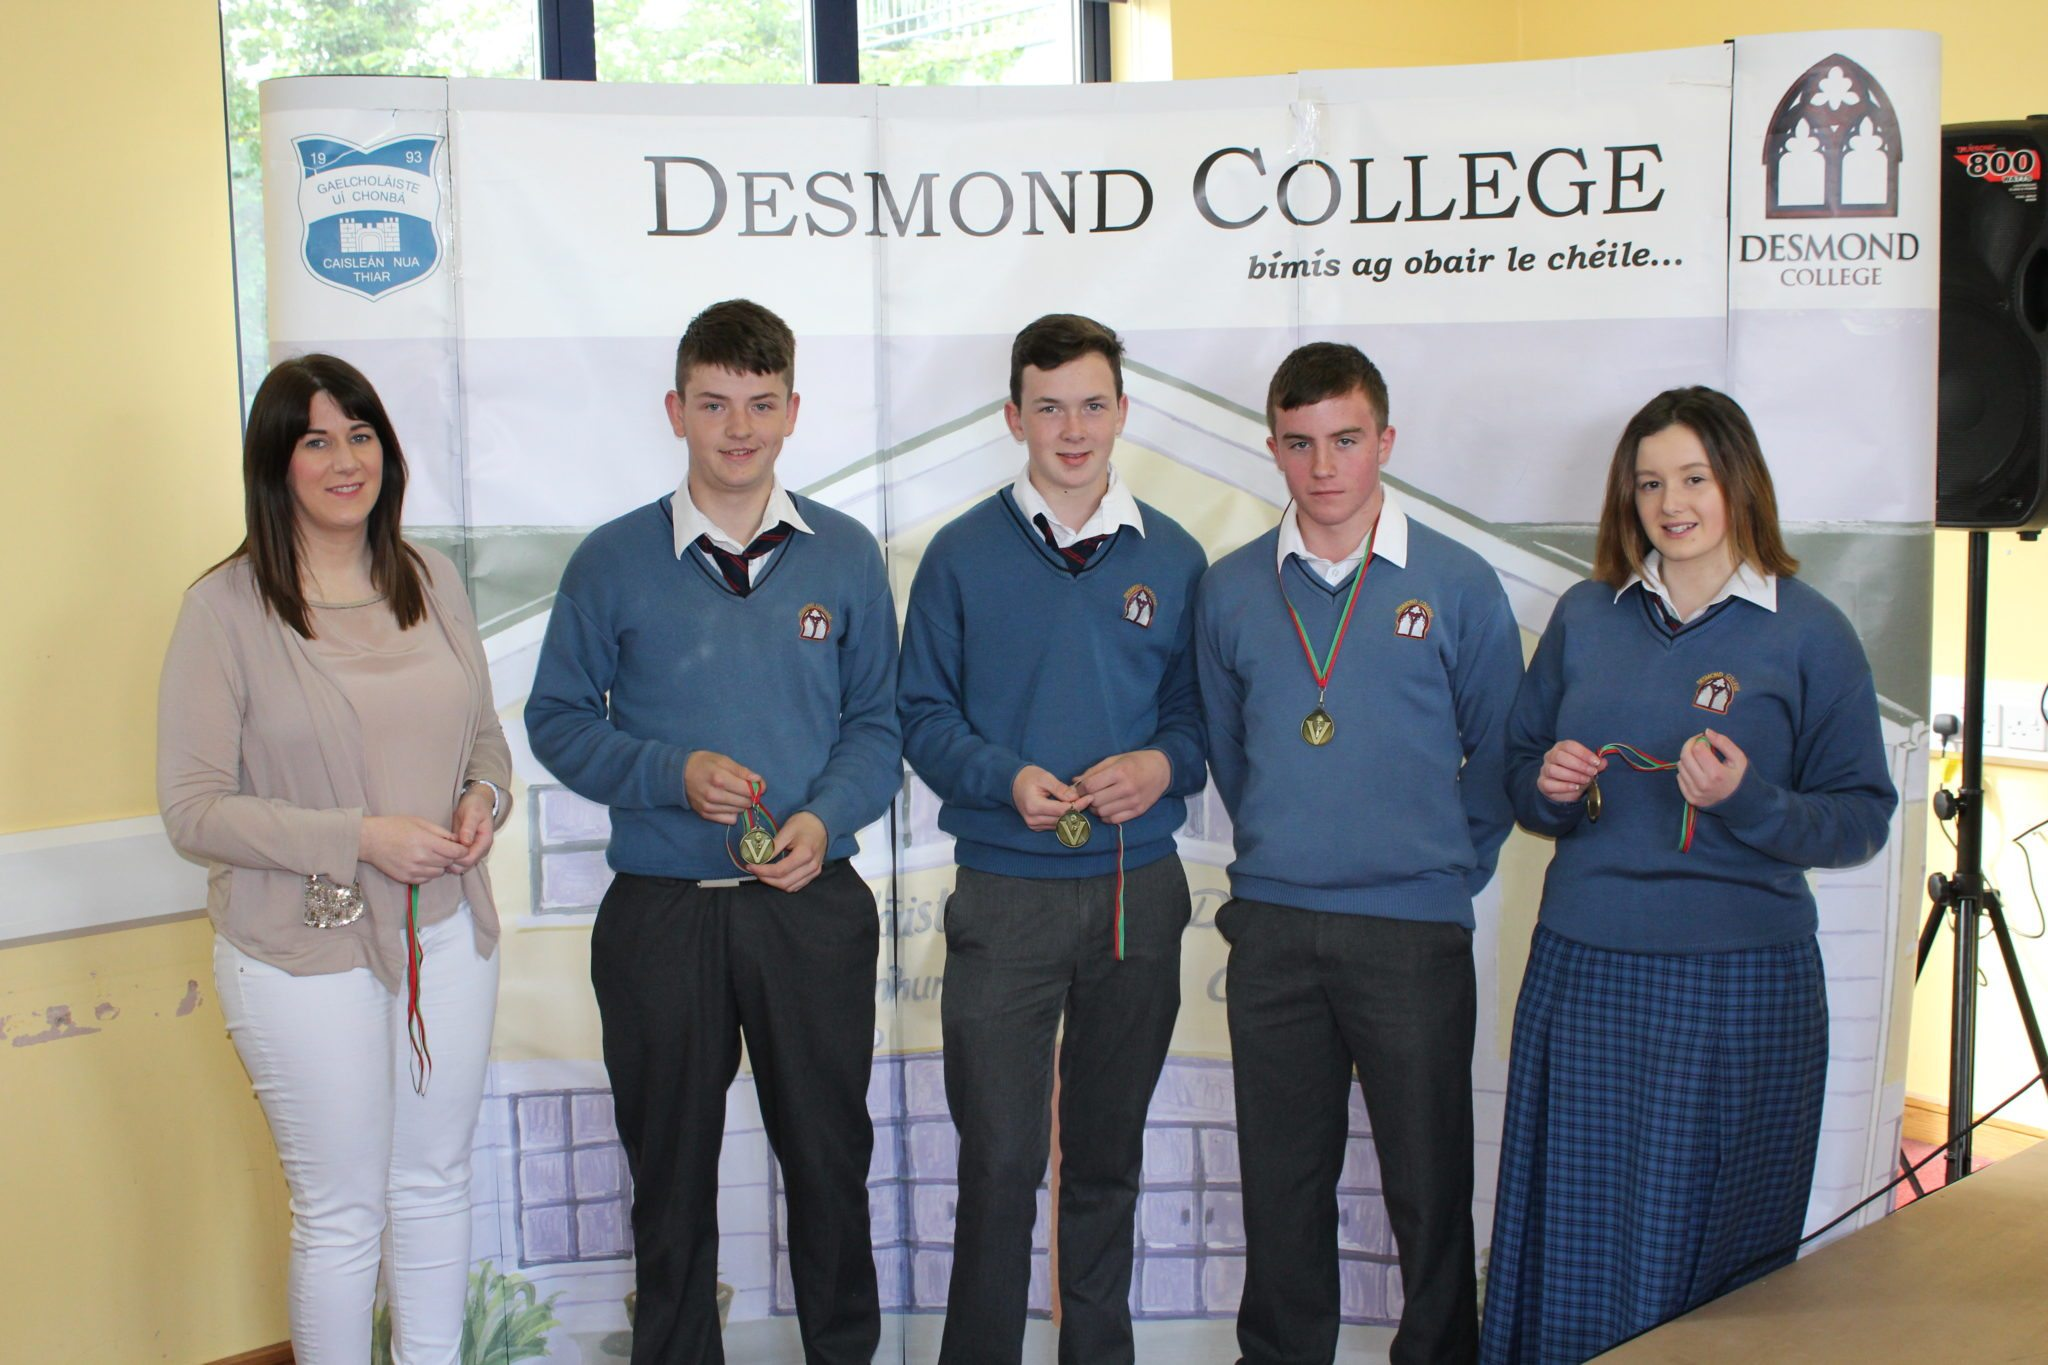 Desmond College Student Awards: May 2015: SPORTS AWARDS 3rd Year : Ms Guiry with Colm Copse, Denis Cronin, Noelie Griffen and Emily Duffy